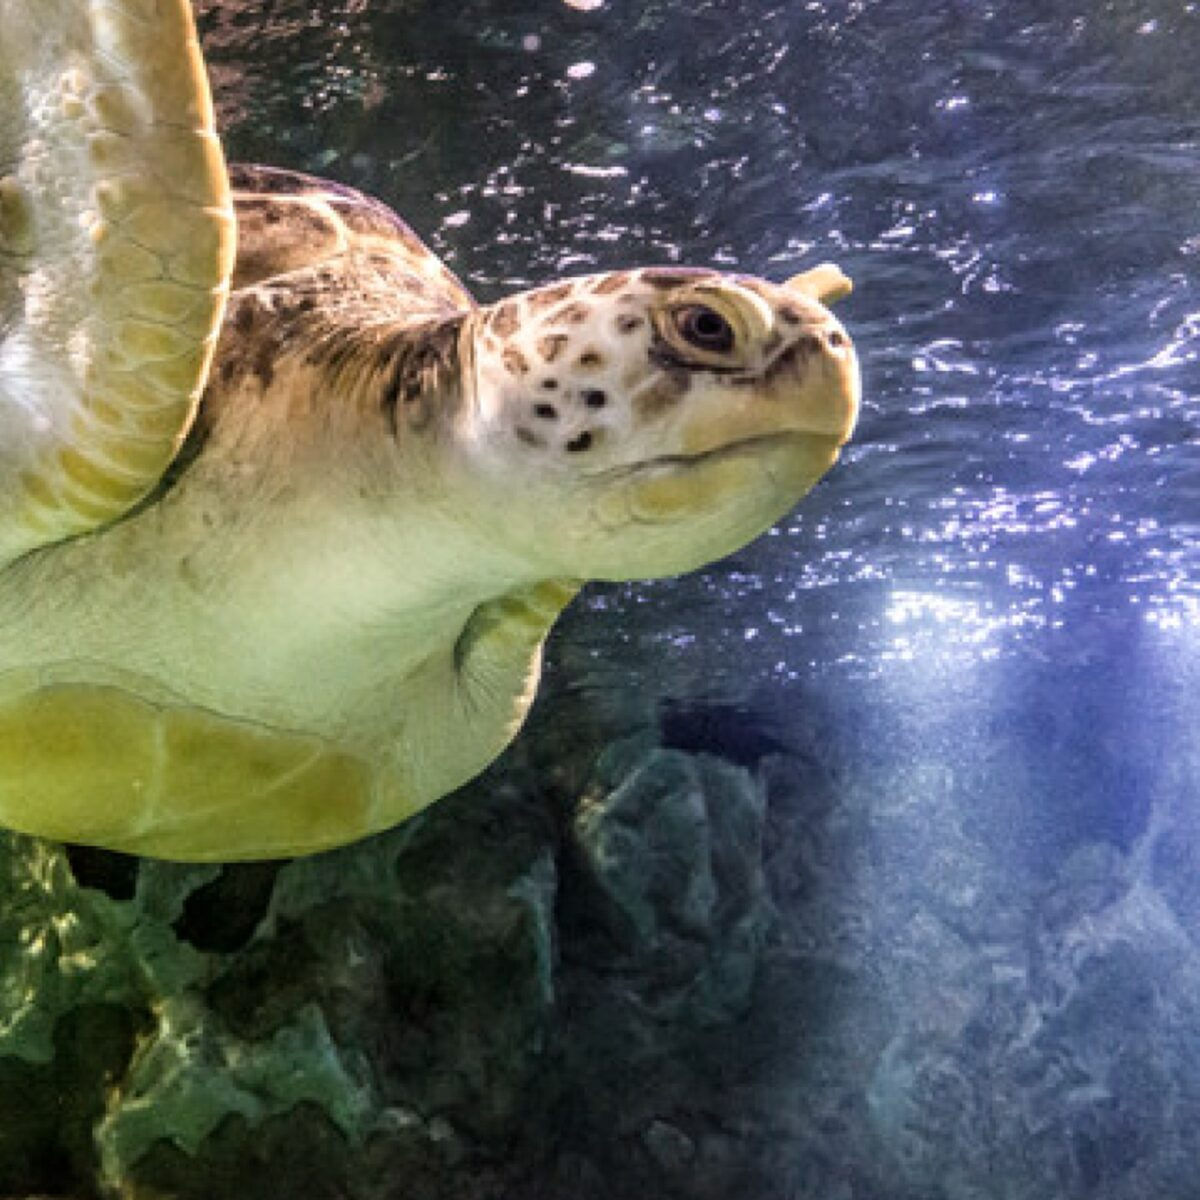 Sea Turtle in the water